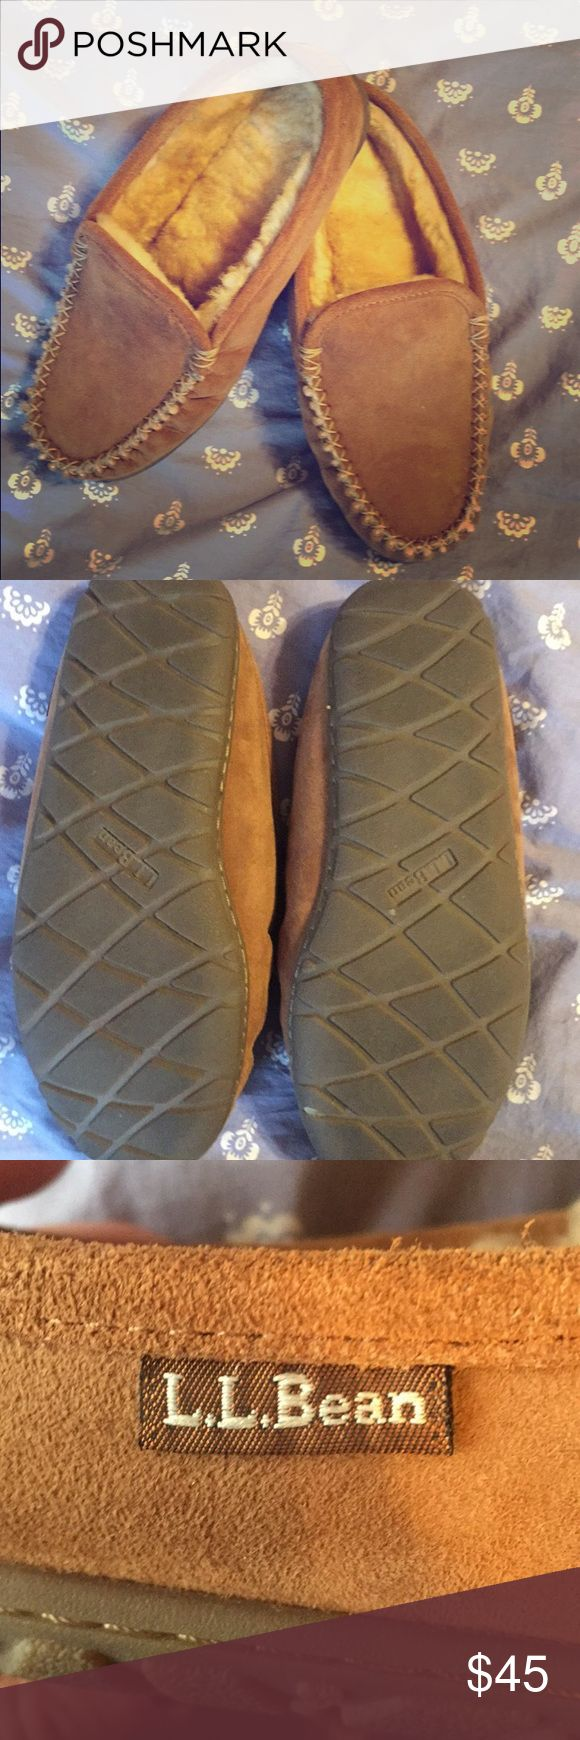 LL Bean Woman's Wicked Good Scuffs These slippers are really comfortable and warm. Only worn a handful of times and are in near perfect condition. Only selling because they are not vegan but are still high quality slippers that deserve some love! L.L. Bean Shoes Moccasins